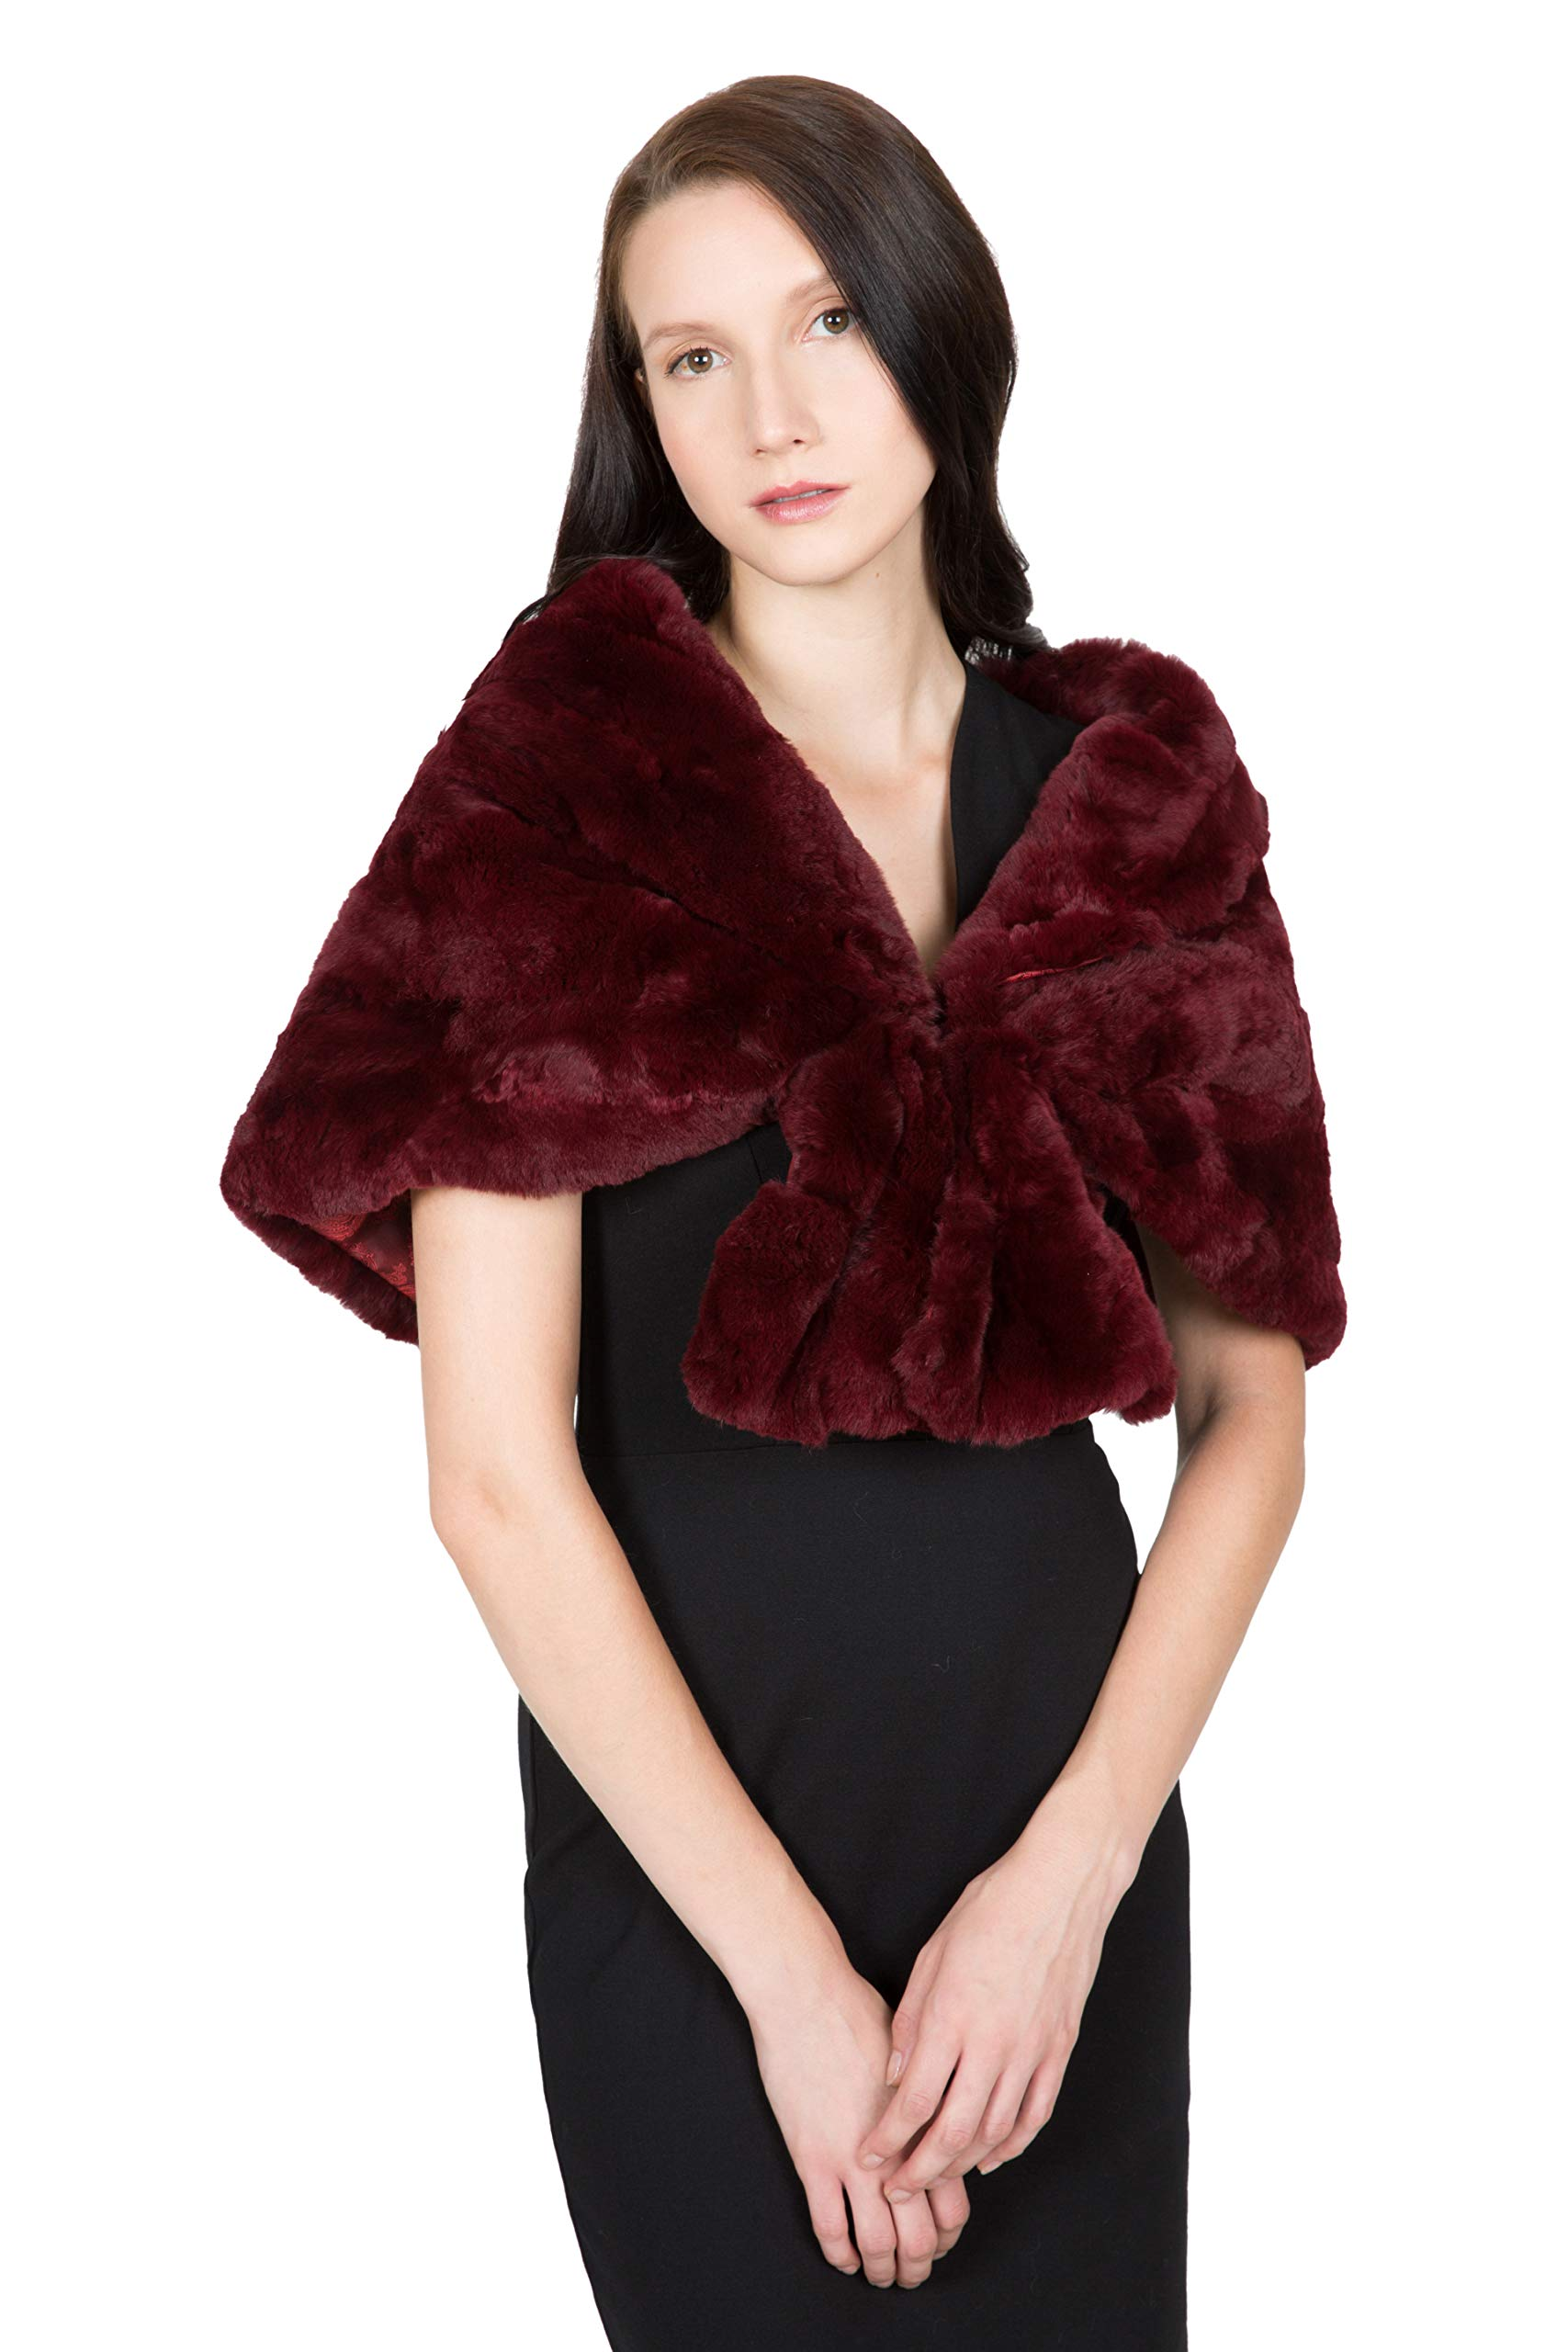 OBURLA Women's Rex Rabbit Fur Cape with Collar | Soft and Luxurious Real Fur Shawl Wrap Stole (Wine)